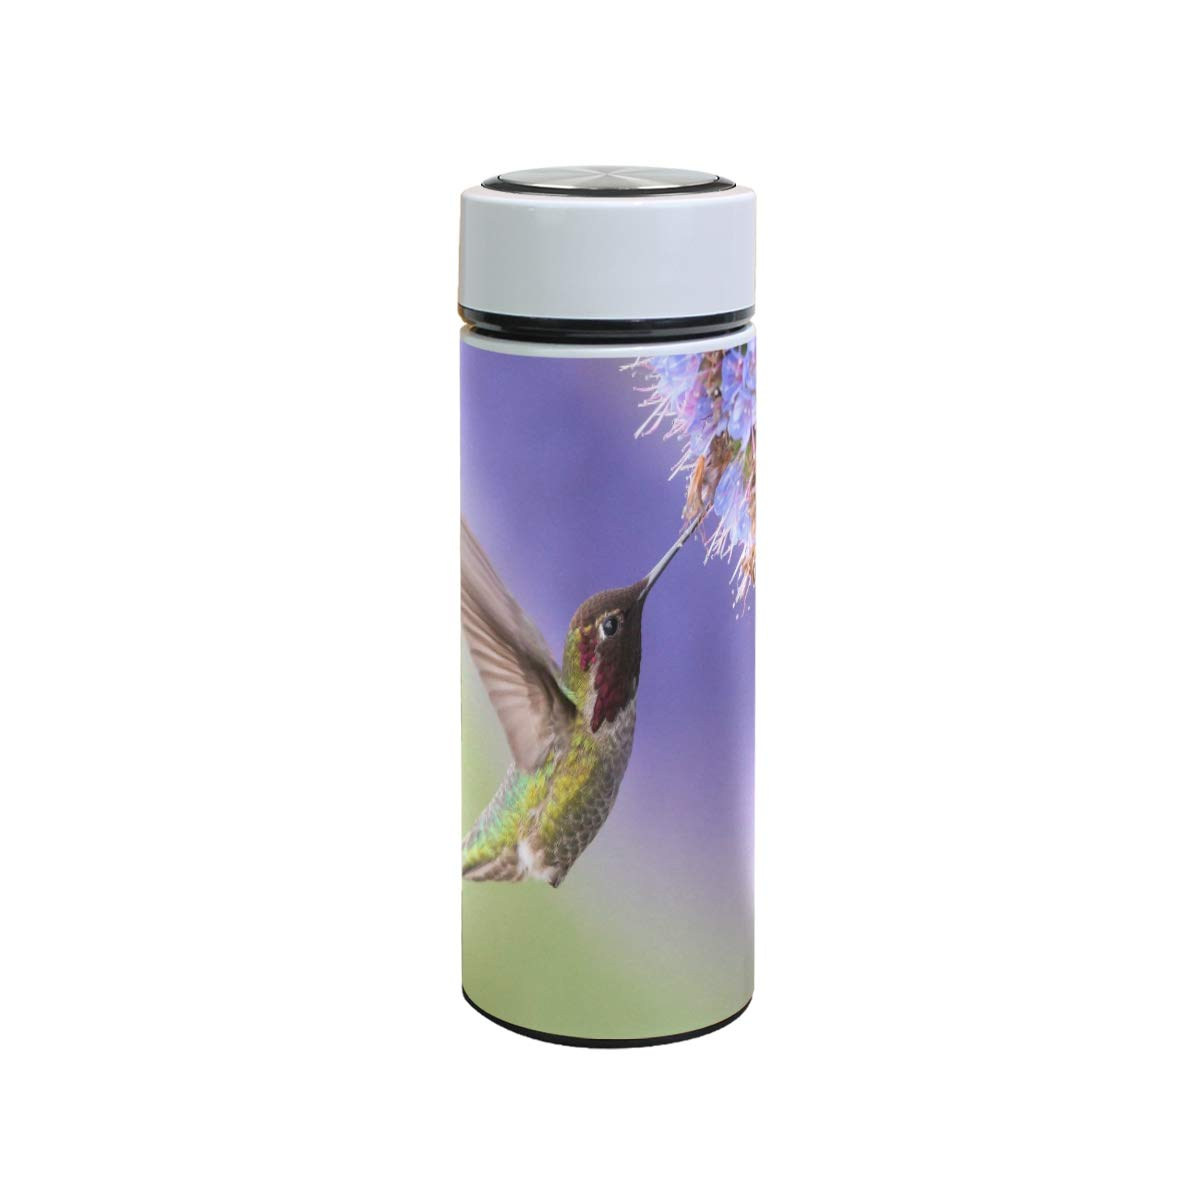 XiangHeFu Stainless Steel Keep Cold or Hot Leak Proof Thermos Hummingbird and Flower Travel Mug Insulated Water Bottle